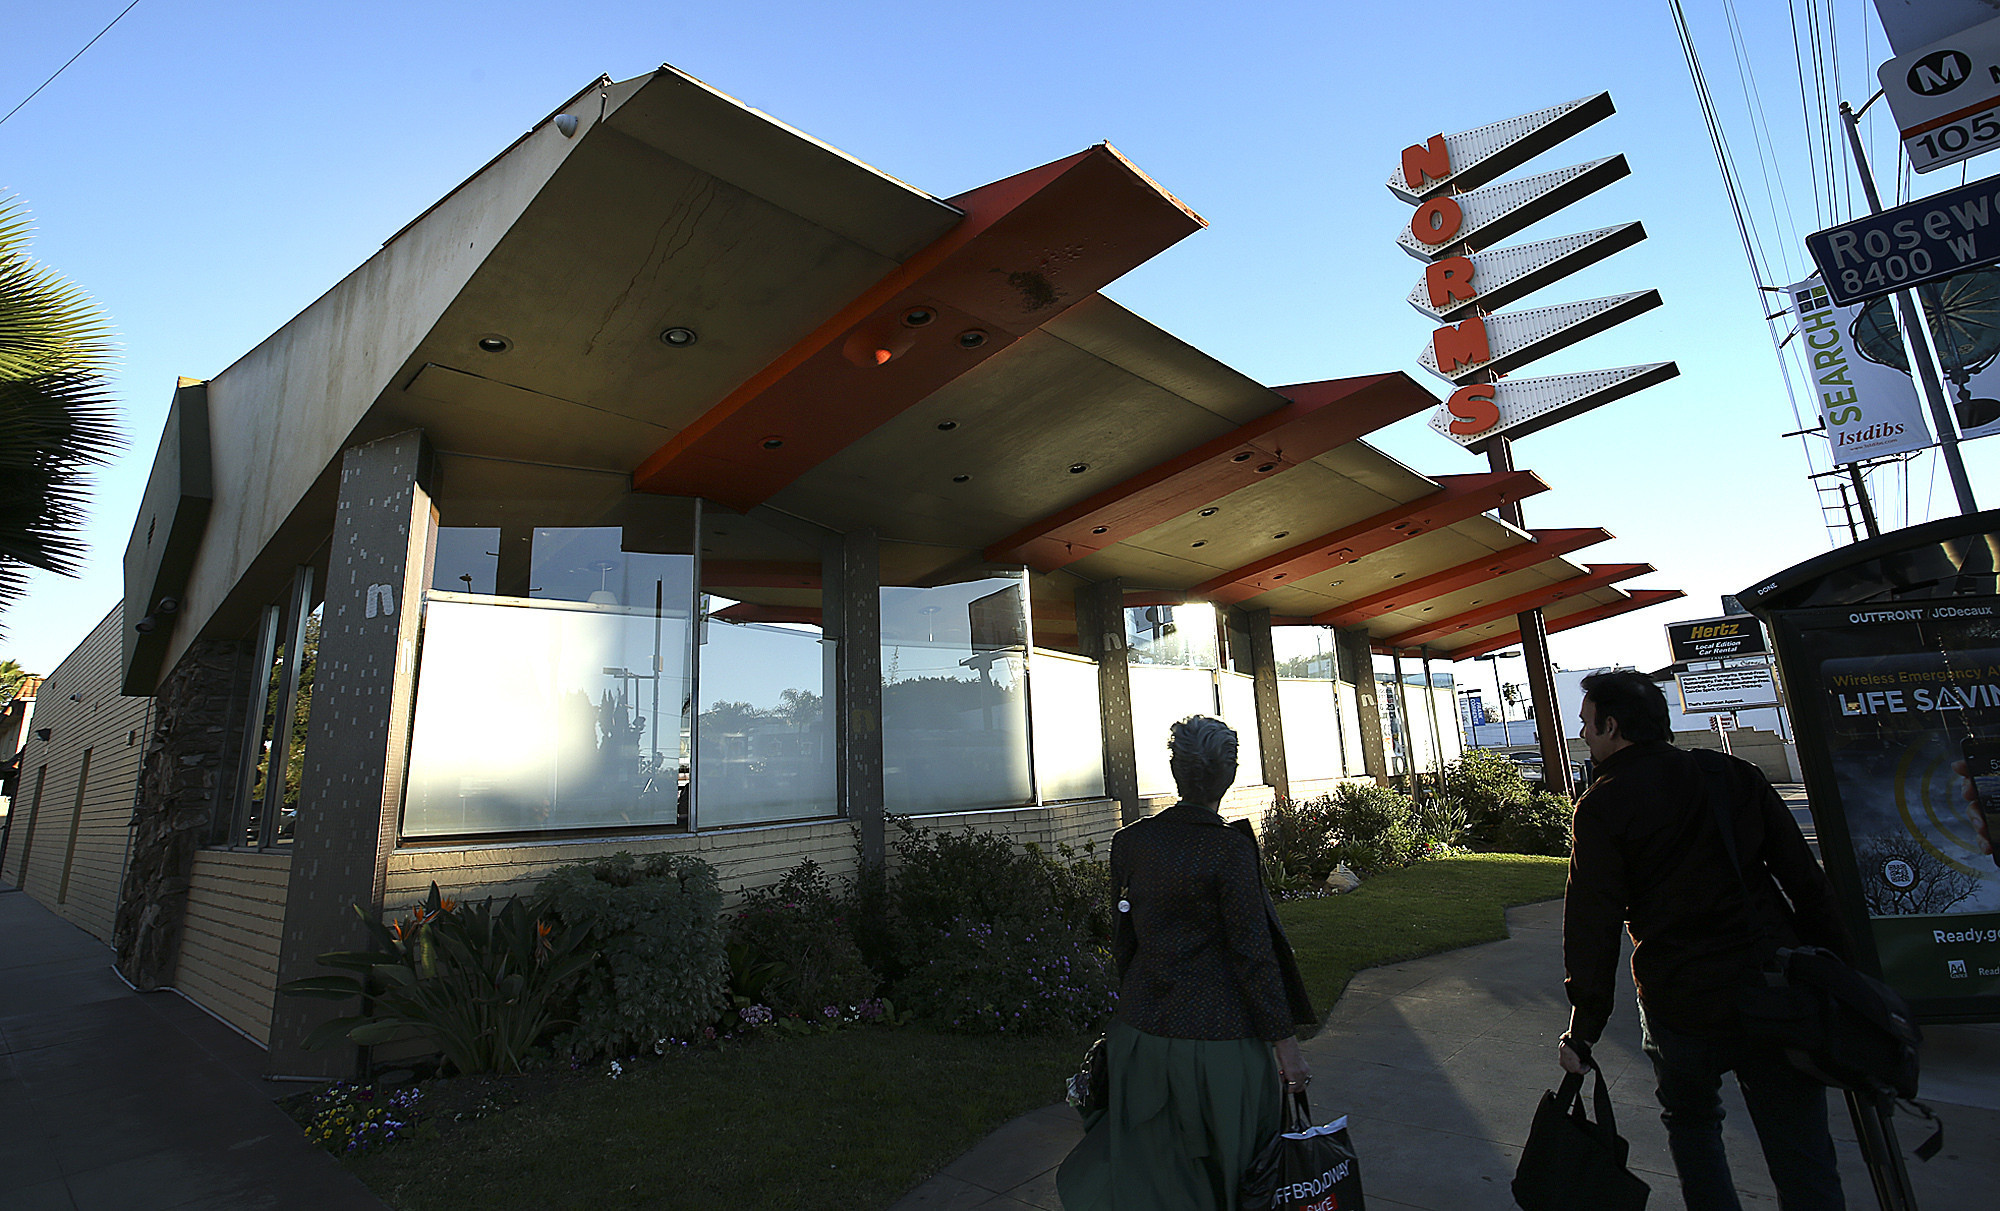 Norms restaurant moves closer to designation as L.A. historic monument